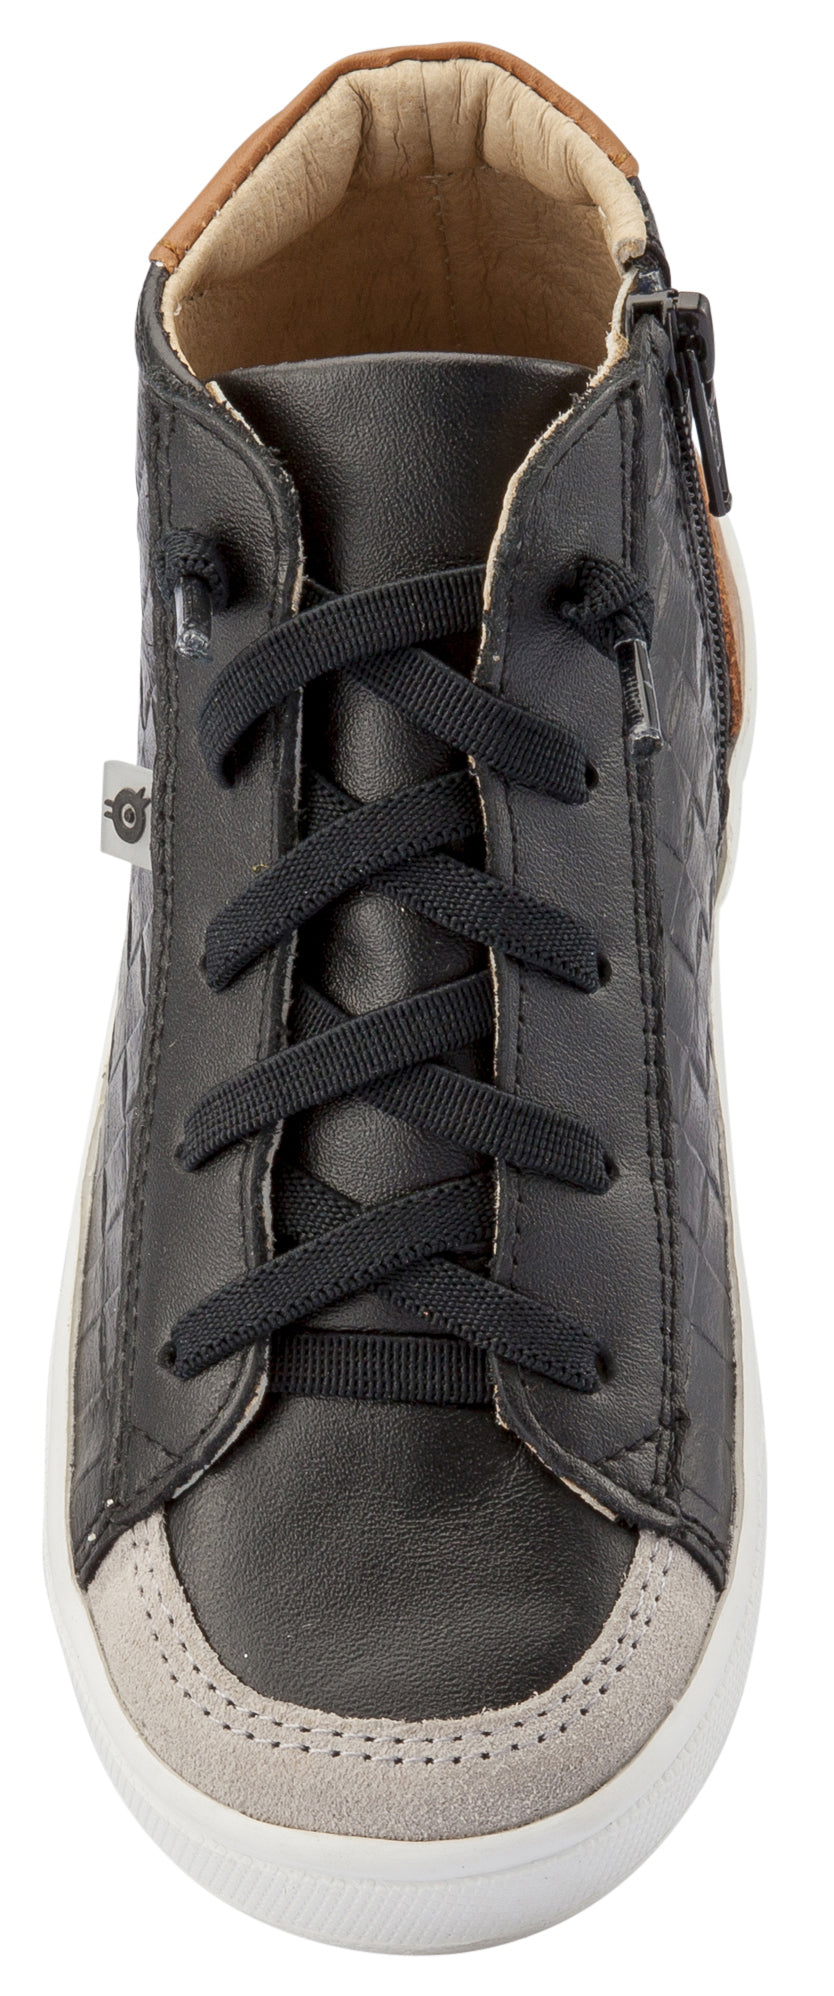 Old Soles Girl's and Boy's Penthouse Sneakers, Black Weave / Tan